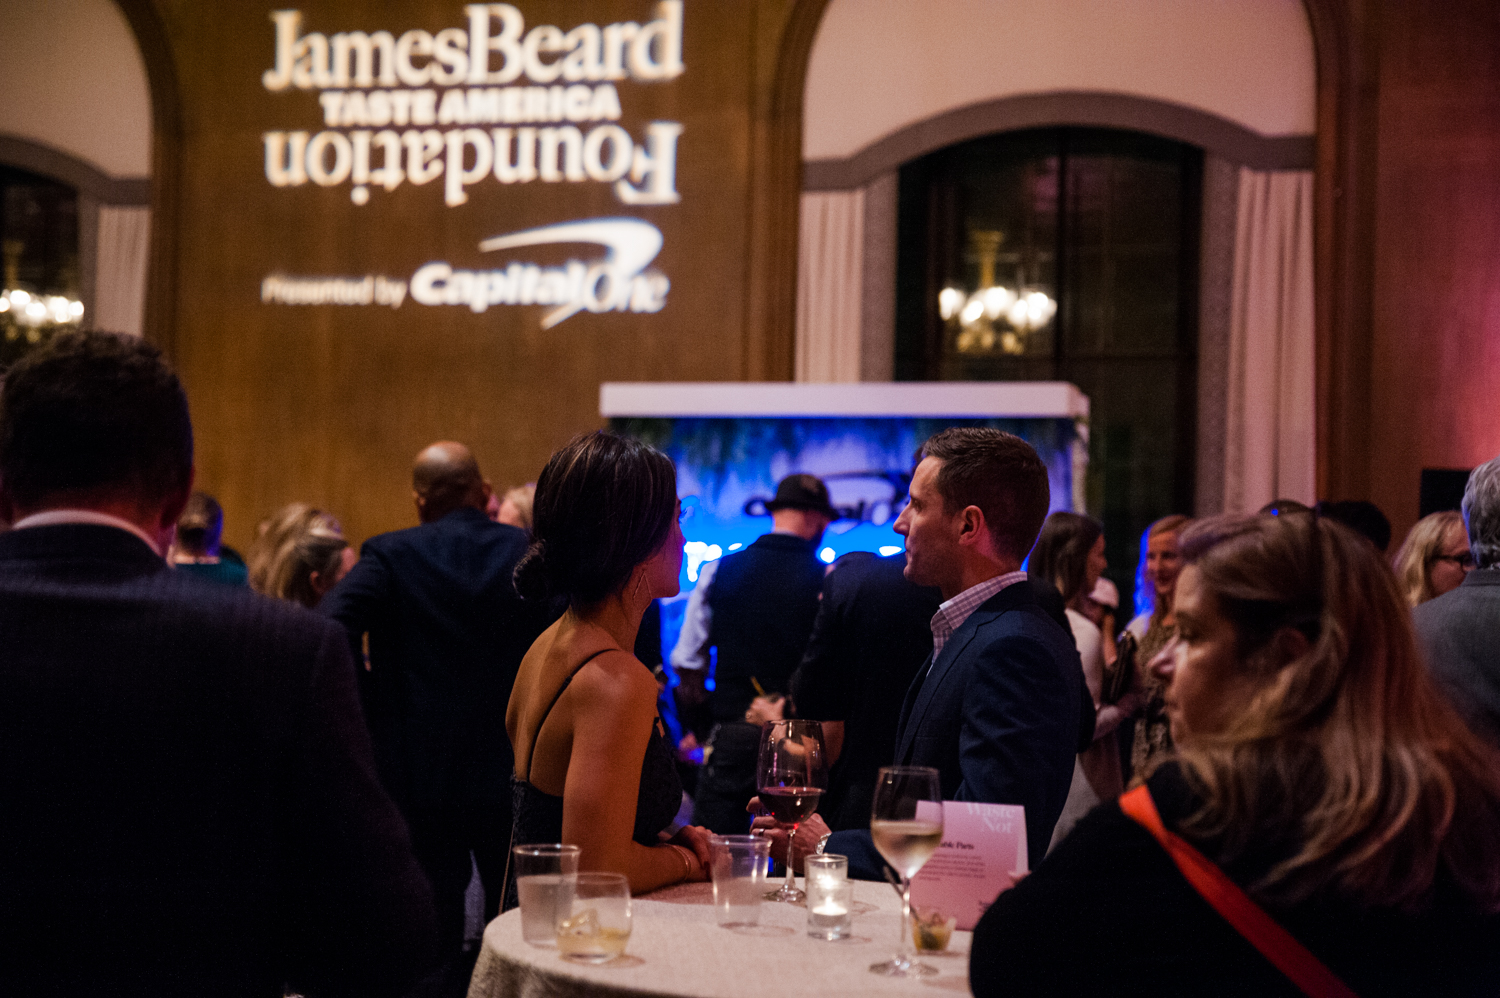 "Every year, the James Beard Foundation chooses 10 cities nationwide that the experts on their team designate as ""exciting culinary destinations"". Of course Seattle was one, and was celebrated last night (Oct. 4) at the Fairmont Olympic Hotel with a VIP reception, cocktail and tasting reception, and a dinner and dessert reception. The dinner menu will was created by Visiting All-Star Kwame Onwuachi of Kith/Kin in D.C. and our Local All-Star Rachel Yang of Joule and Revel. And if that wasn't enough chef star power for you, reception tastings are by Eric Donnelly of RockCreek, Monica Dimas of Milkwood & Co., Shiro Kashiba of Sushi Kashiba, Tiffany Layco of Andaluca, Mitch Mayers of Sawyer, Artis Kalsons of 4th. Ave. Espresso Bar, Carrie Mashaney of Mamnoon and Kit and Jesse Schumann of Sea Wolf Bakers. (Image: Elizabeth Crook / Seattle Refined)"